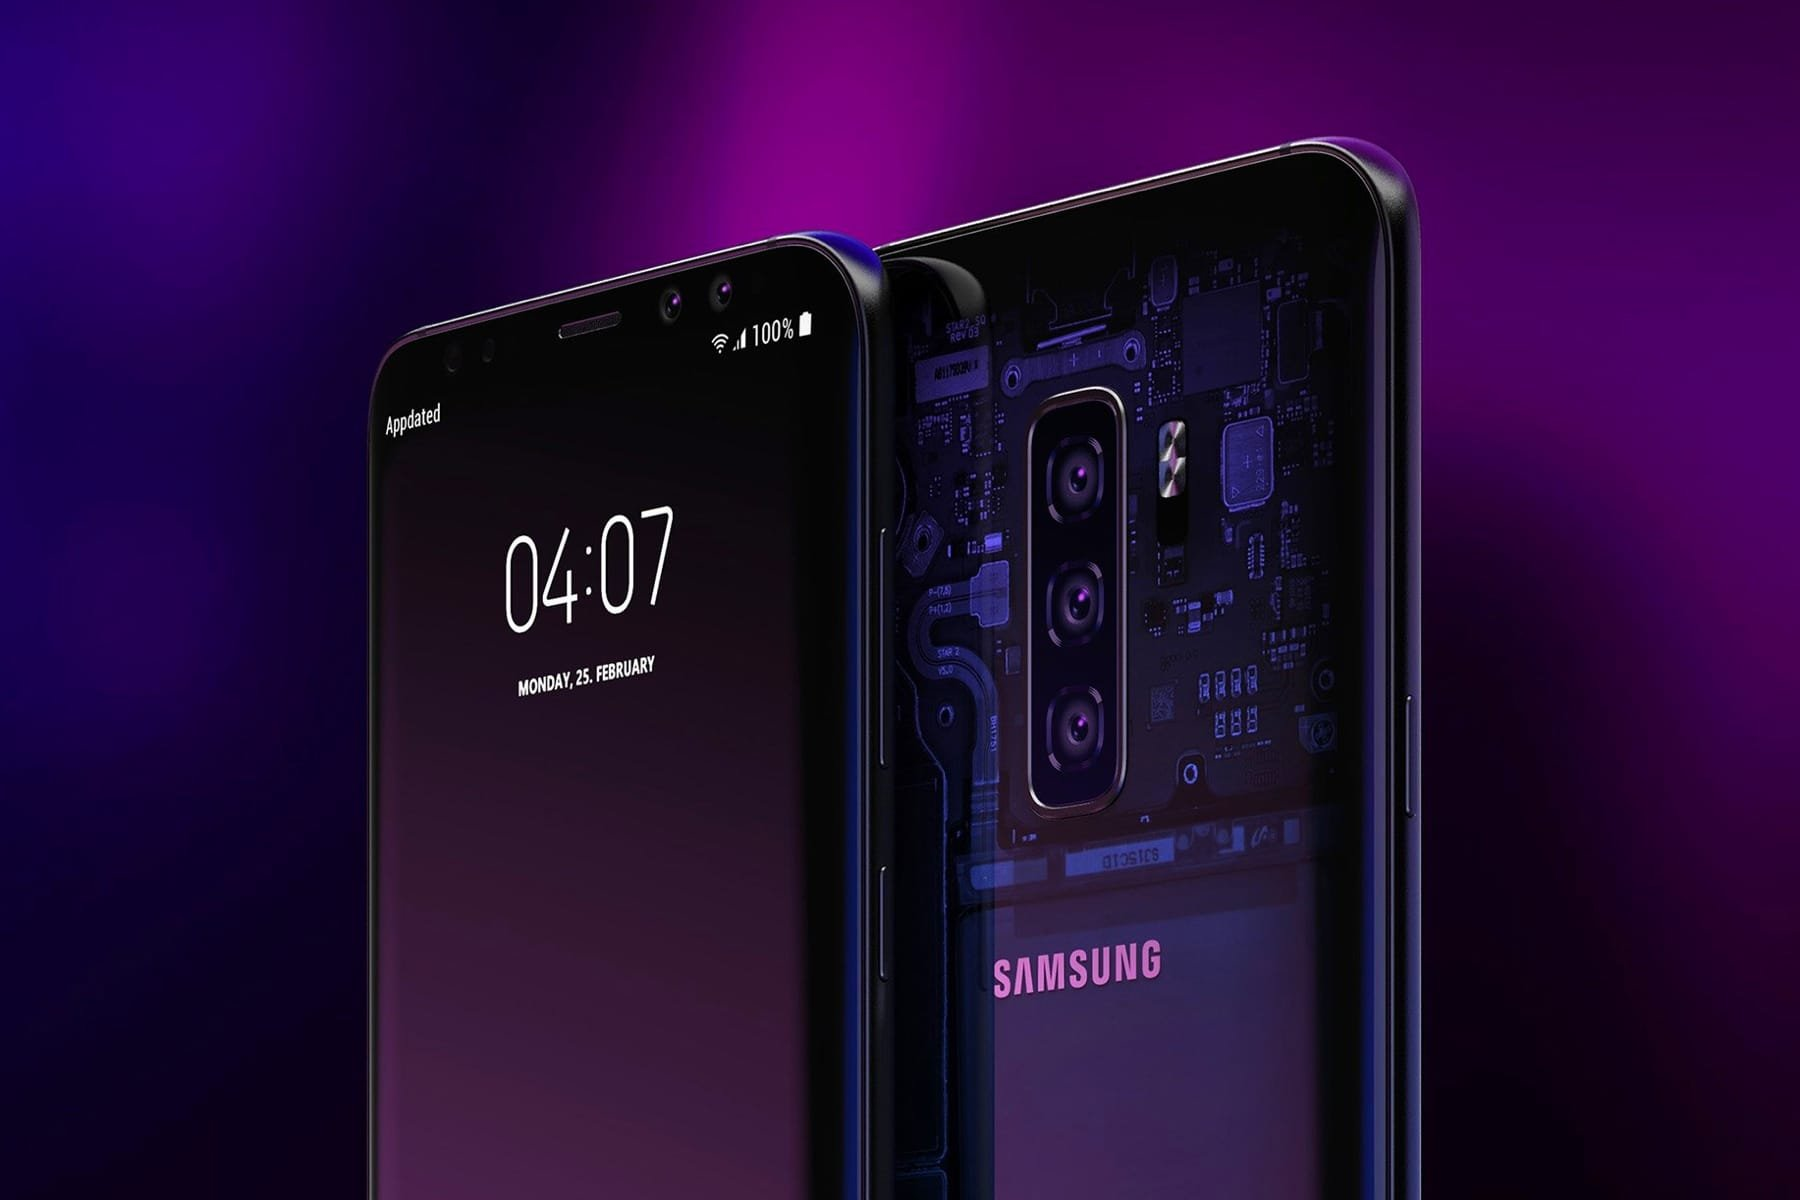 samsung, galaxy s10, galaxy s10 release date, galaxy s10 specs, samsung infinity display